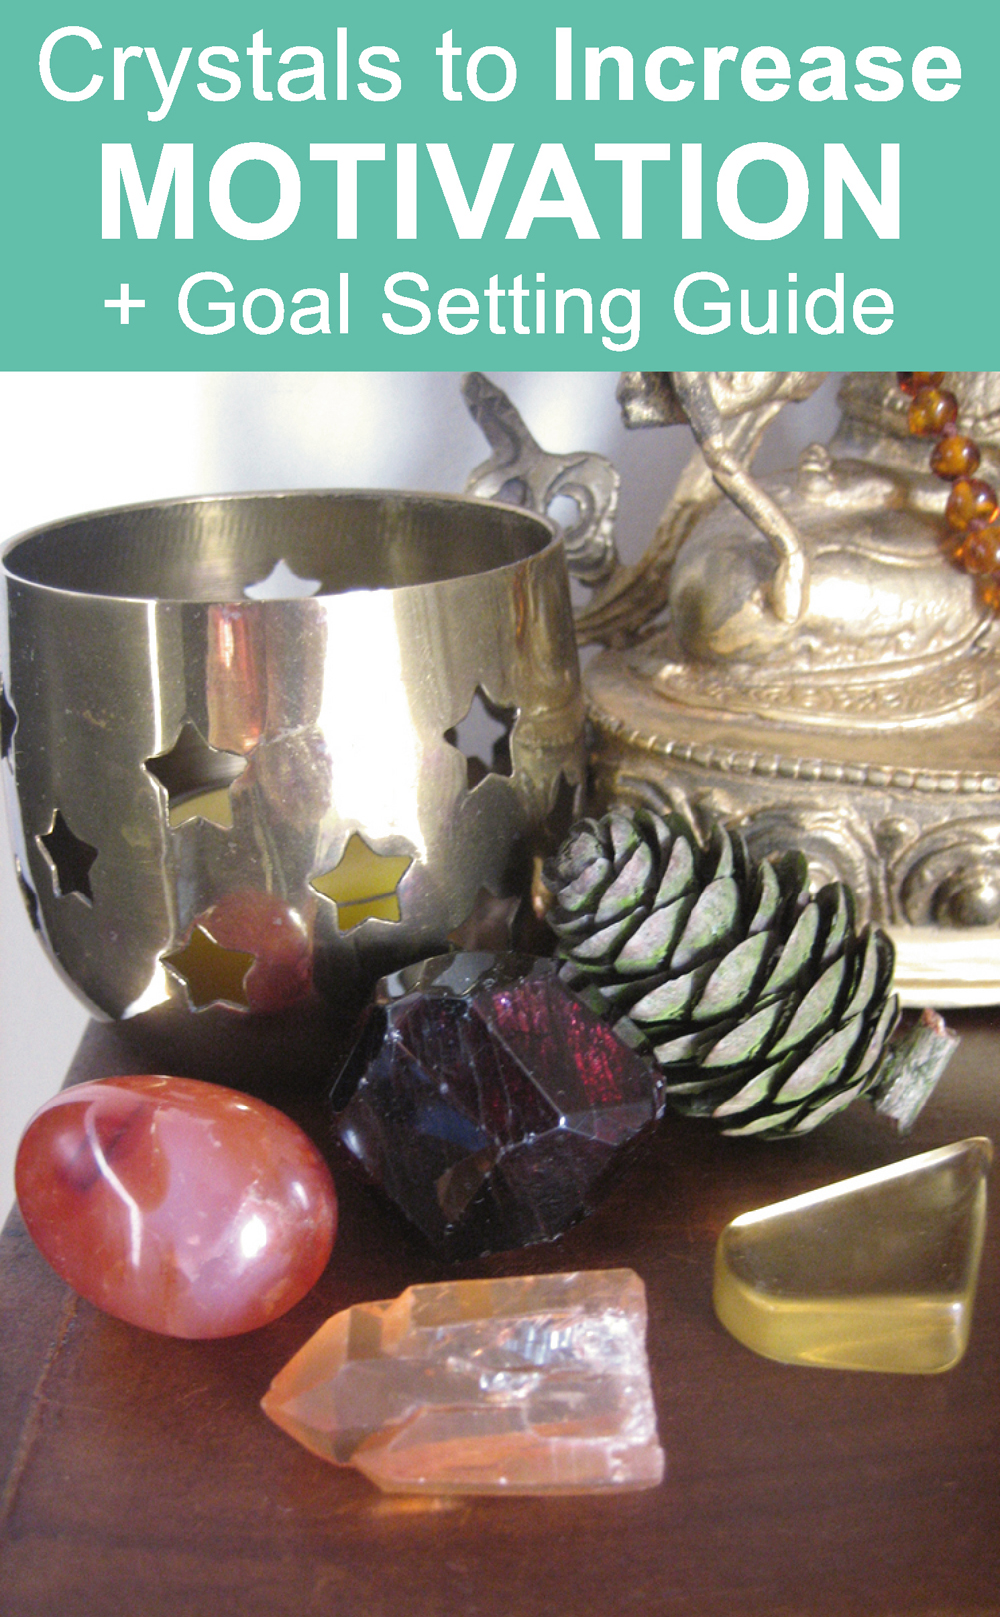 Crystals to Increase MOTIVATION plus Goal Setting Guide